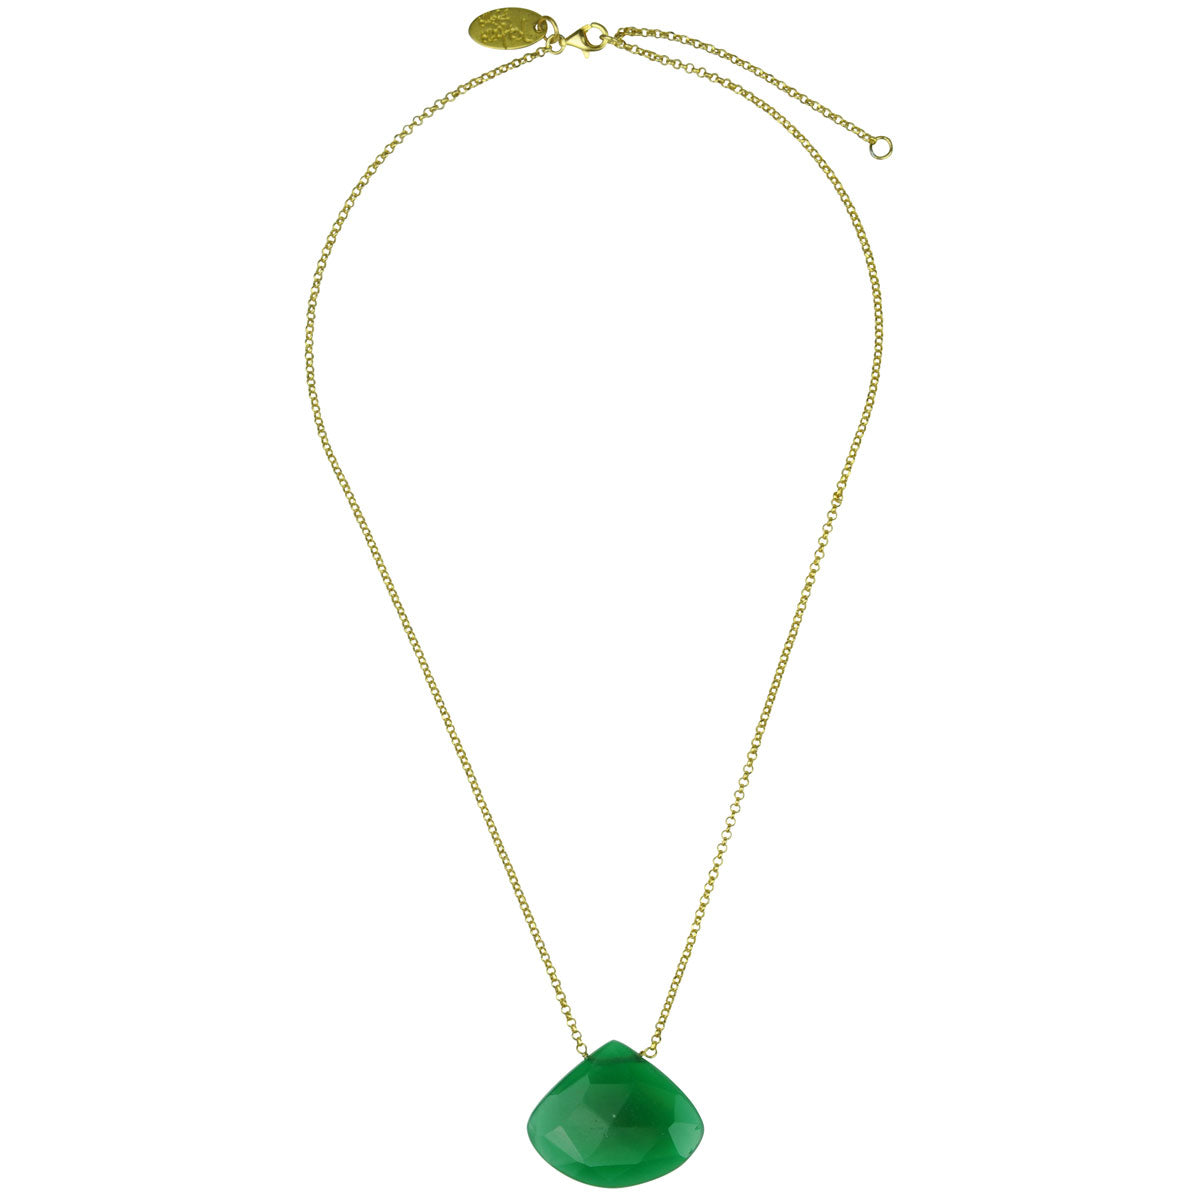 semiprecious green agate faceted stone with 925 sterling silver chain necklace katerina psoma